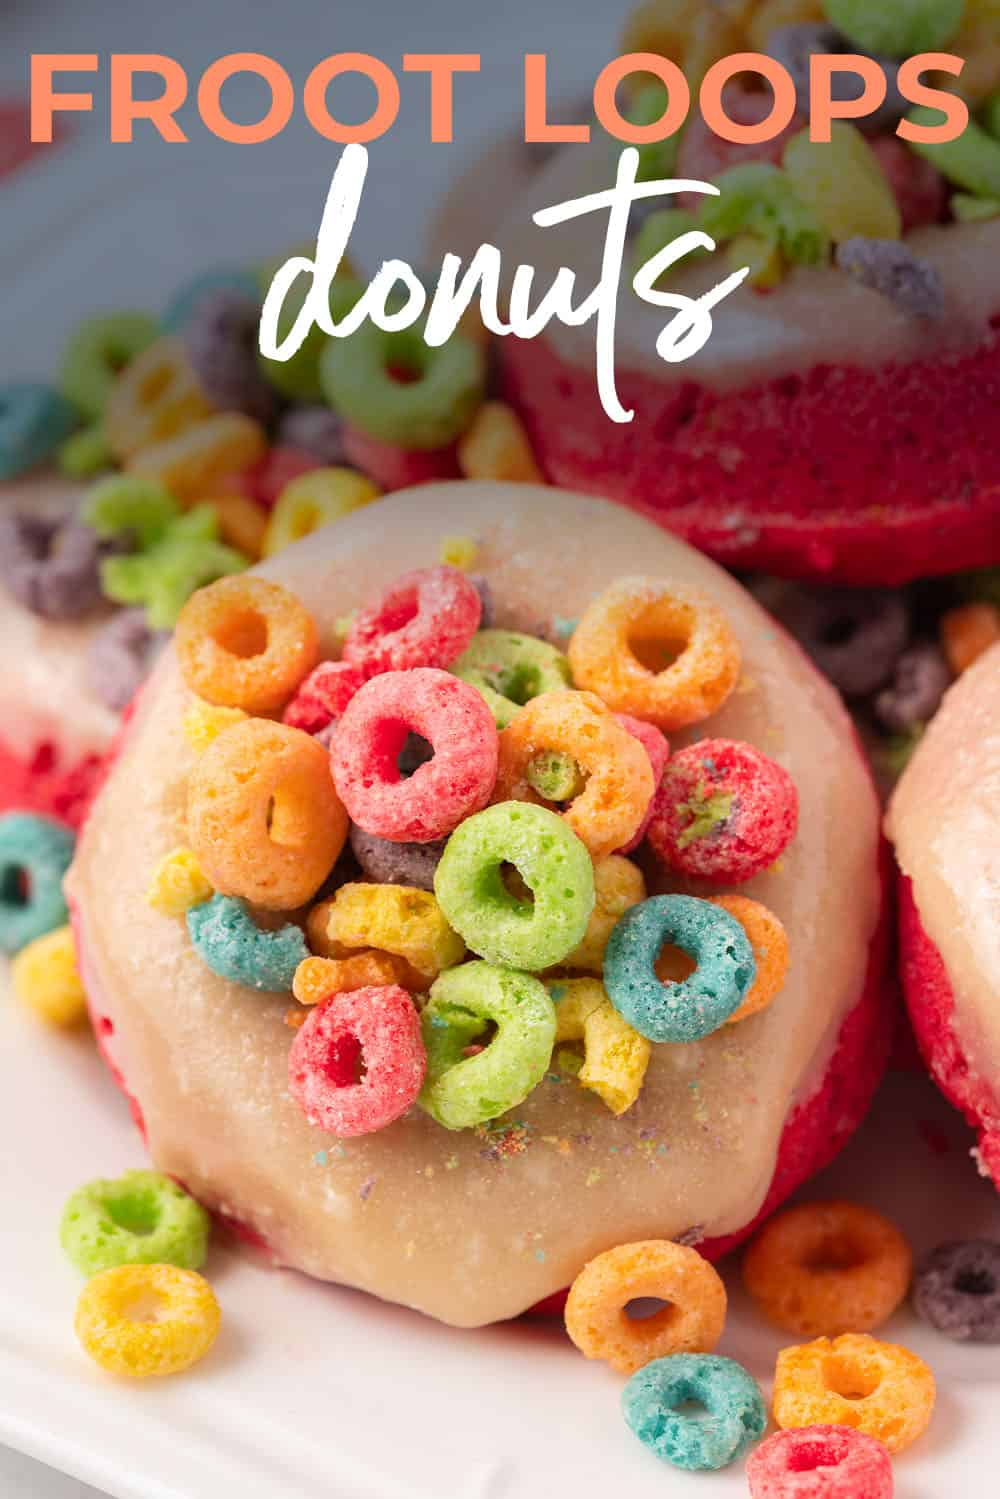 froot loops baked donuts piled on plate.